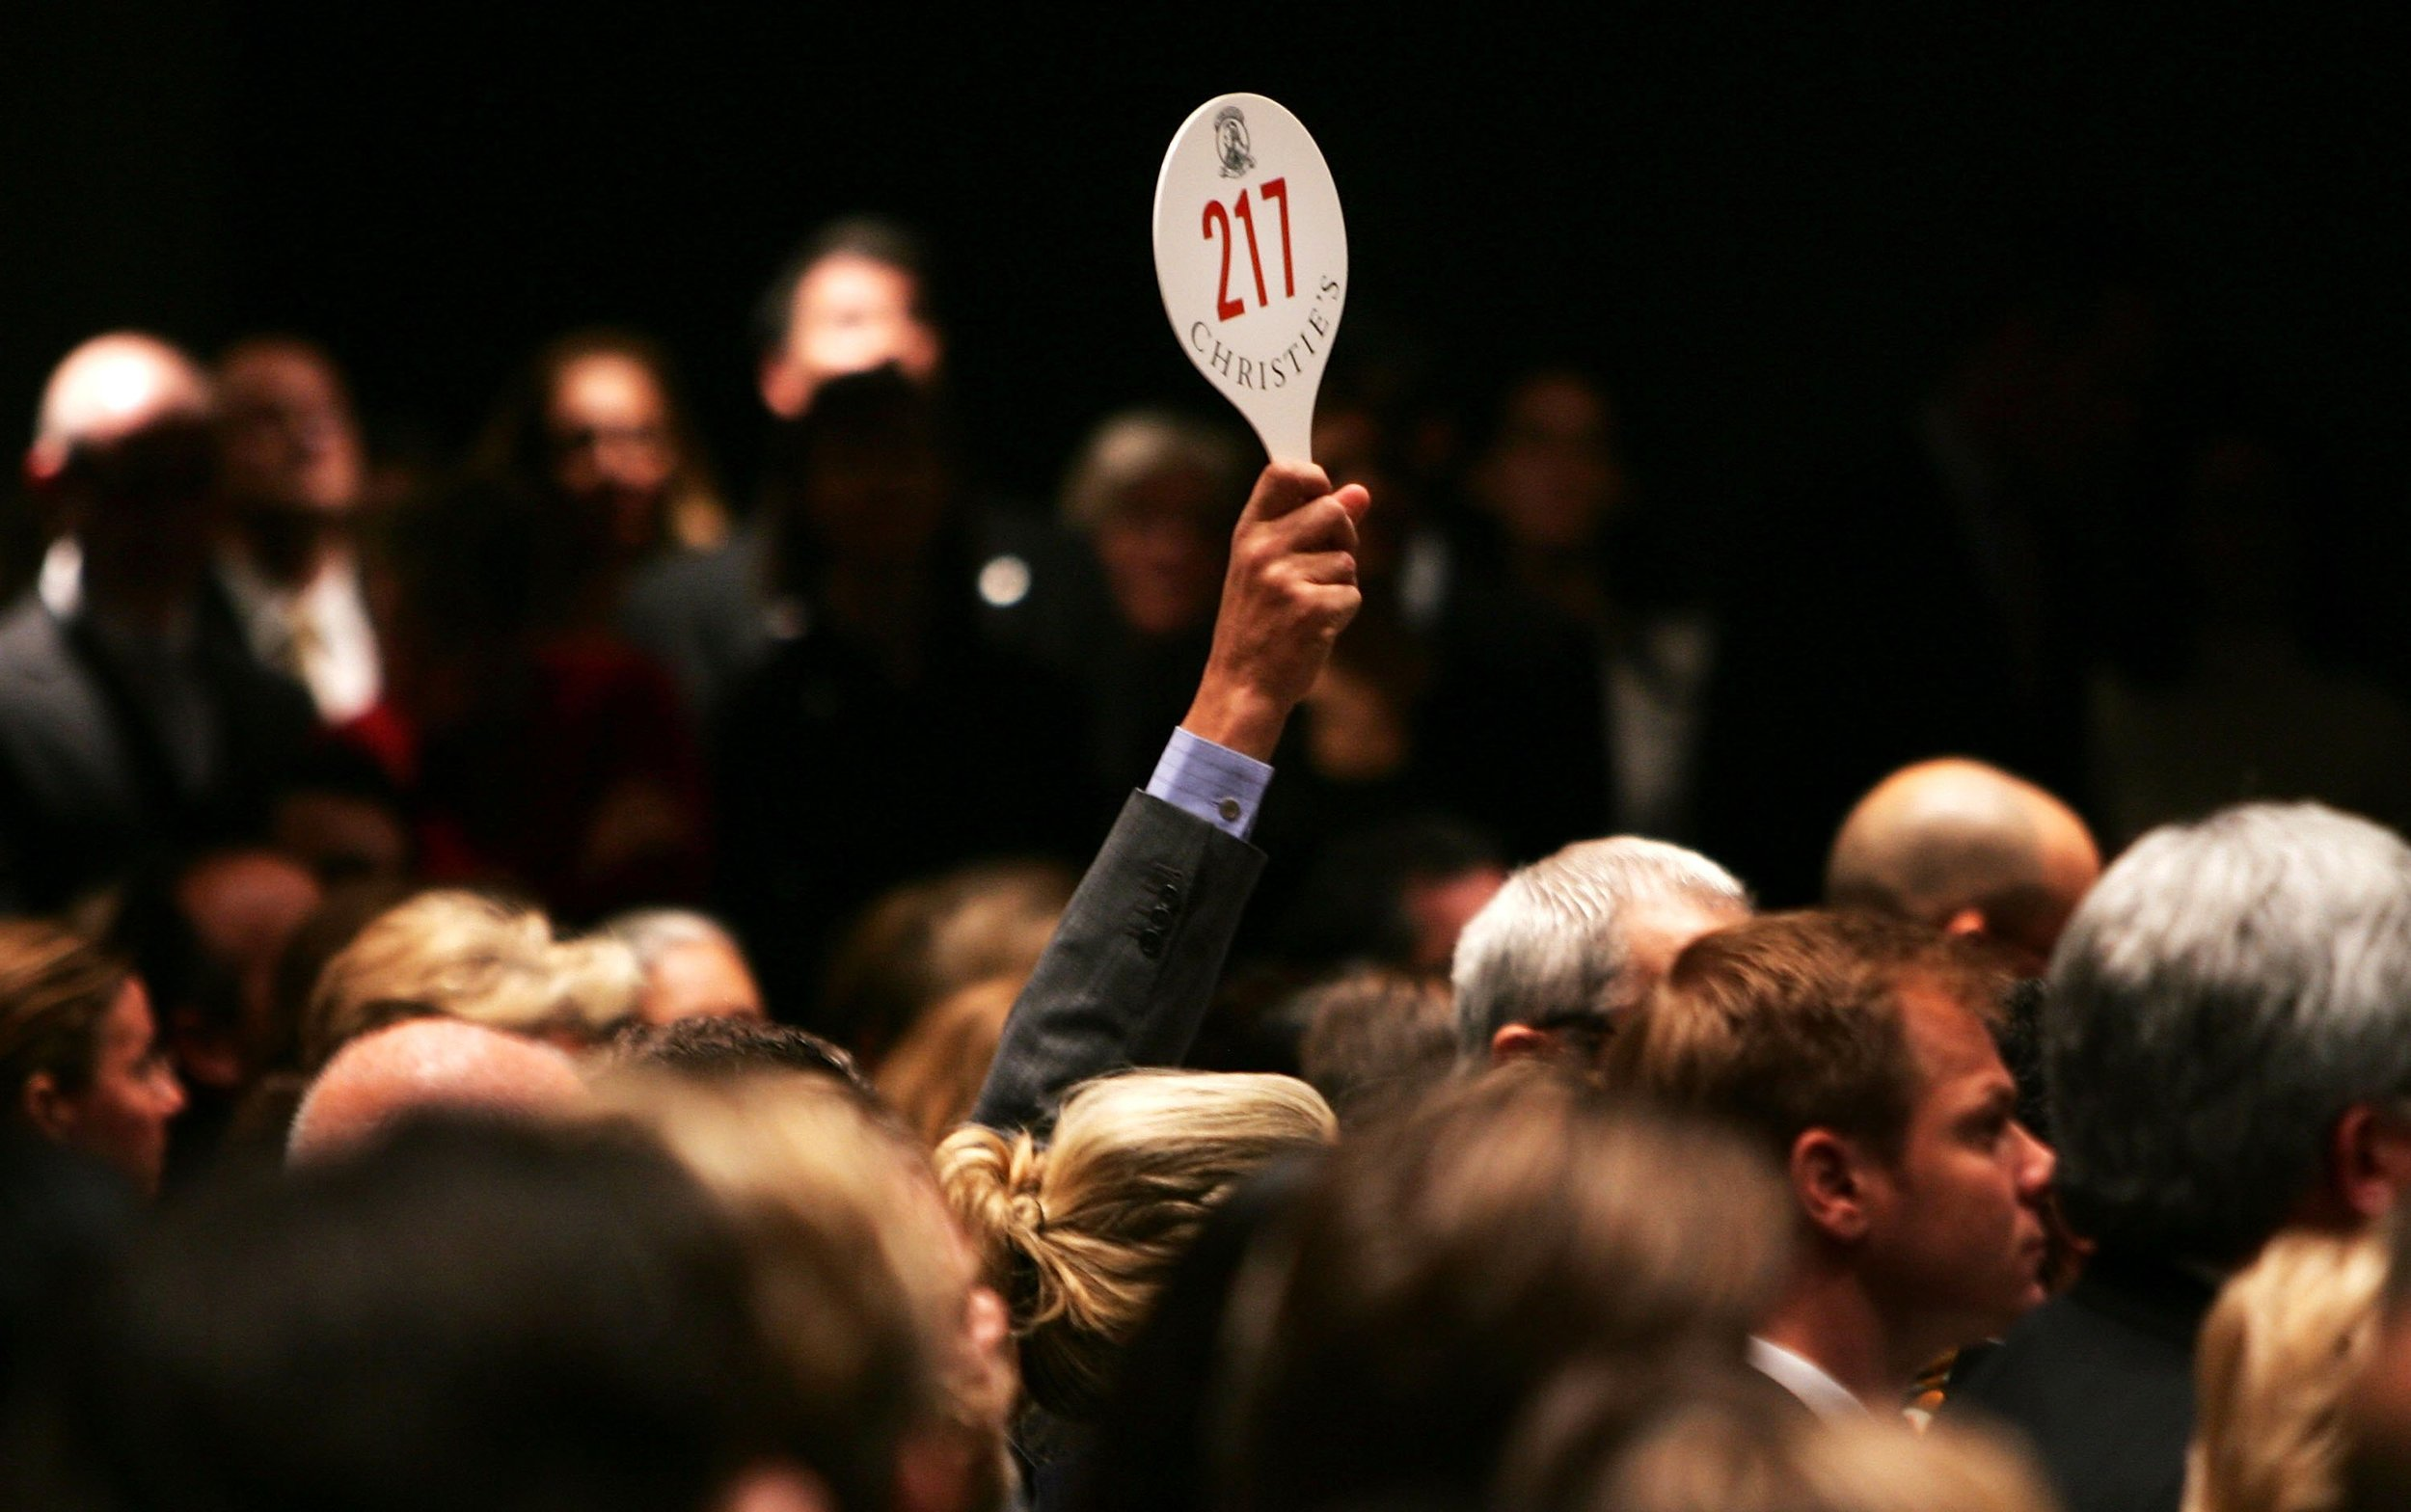 NEW YORK - NOVEMBER 15: A man holds his hand up while bidding on a work of art inside the auction house Christie's during the Post-War and contemporary Art sale November 15, 2006 in New York City. Christie's estimates that works by Warhol, Willem de Kooning, Roy Lichtenstein and others could go for up to $220 million in what the auction house says may be the most valuable post-World War II and contemporary art auction in history. Warhol's 'Mao' portrait from 1972 went for over 17 million, setting an all time record for the artist. (Photo by Spencer Platt/Getty Images)